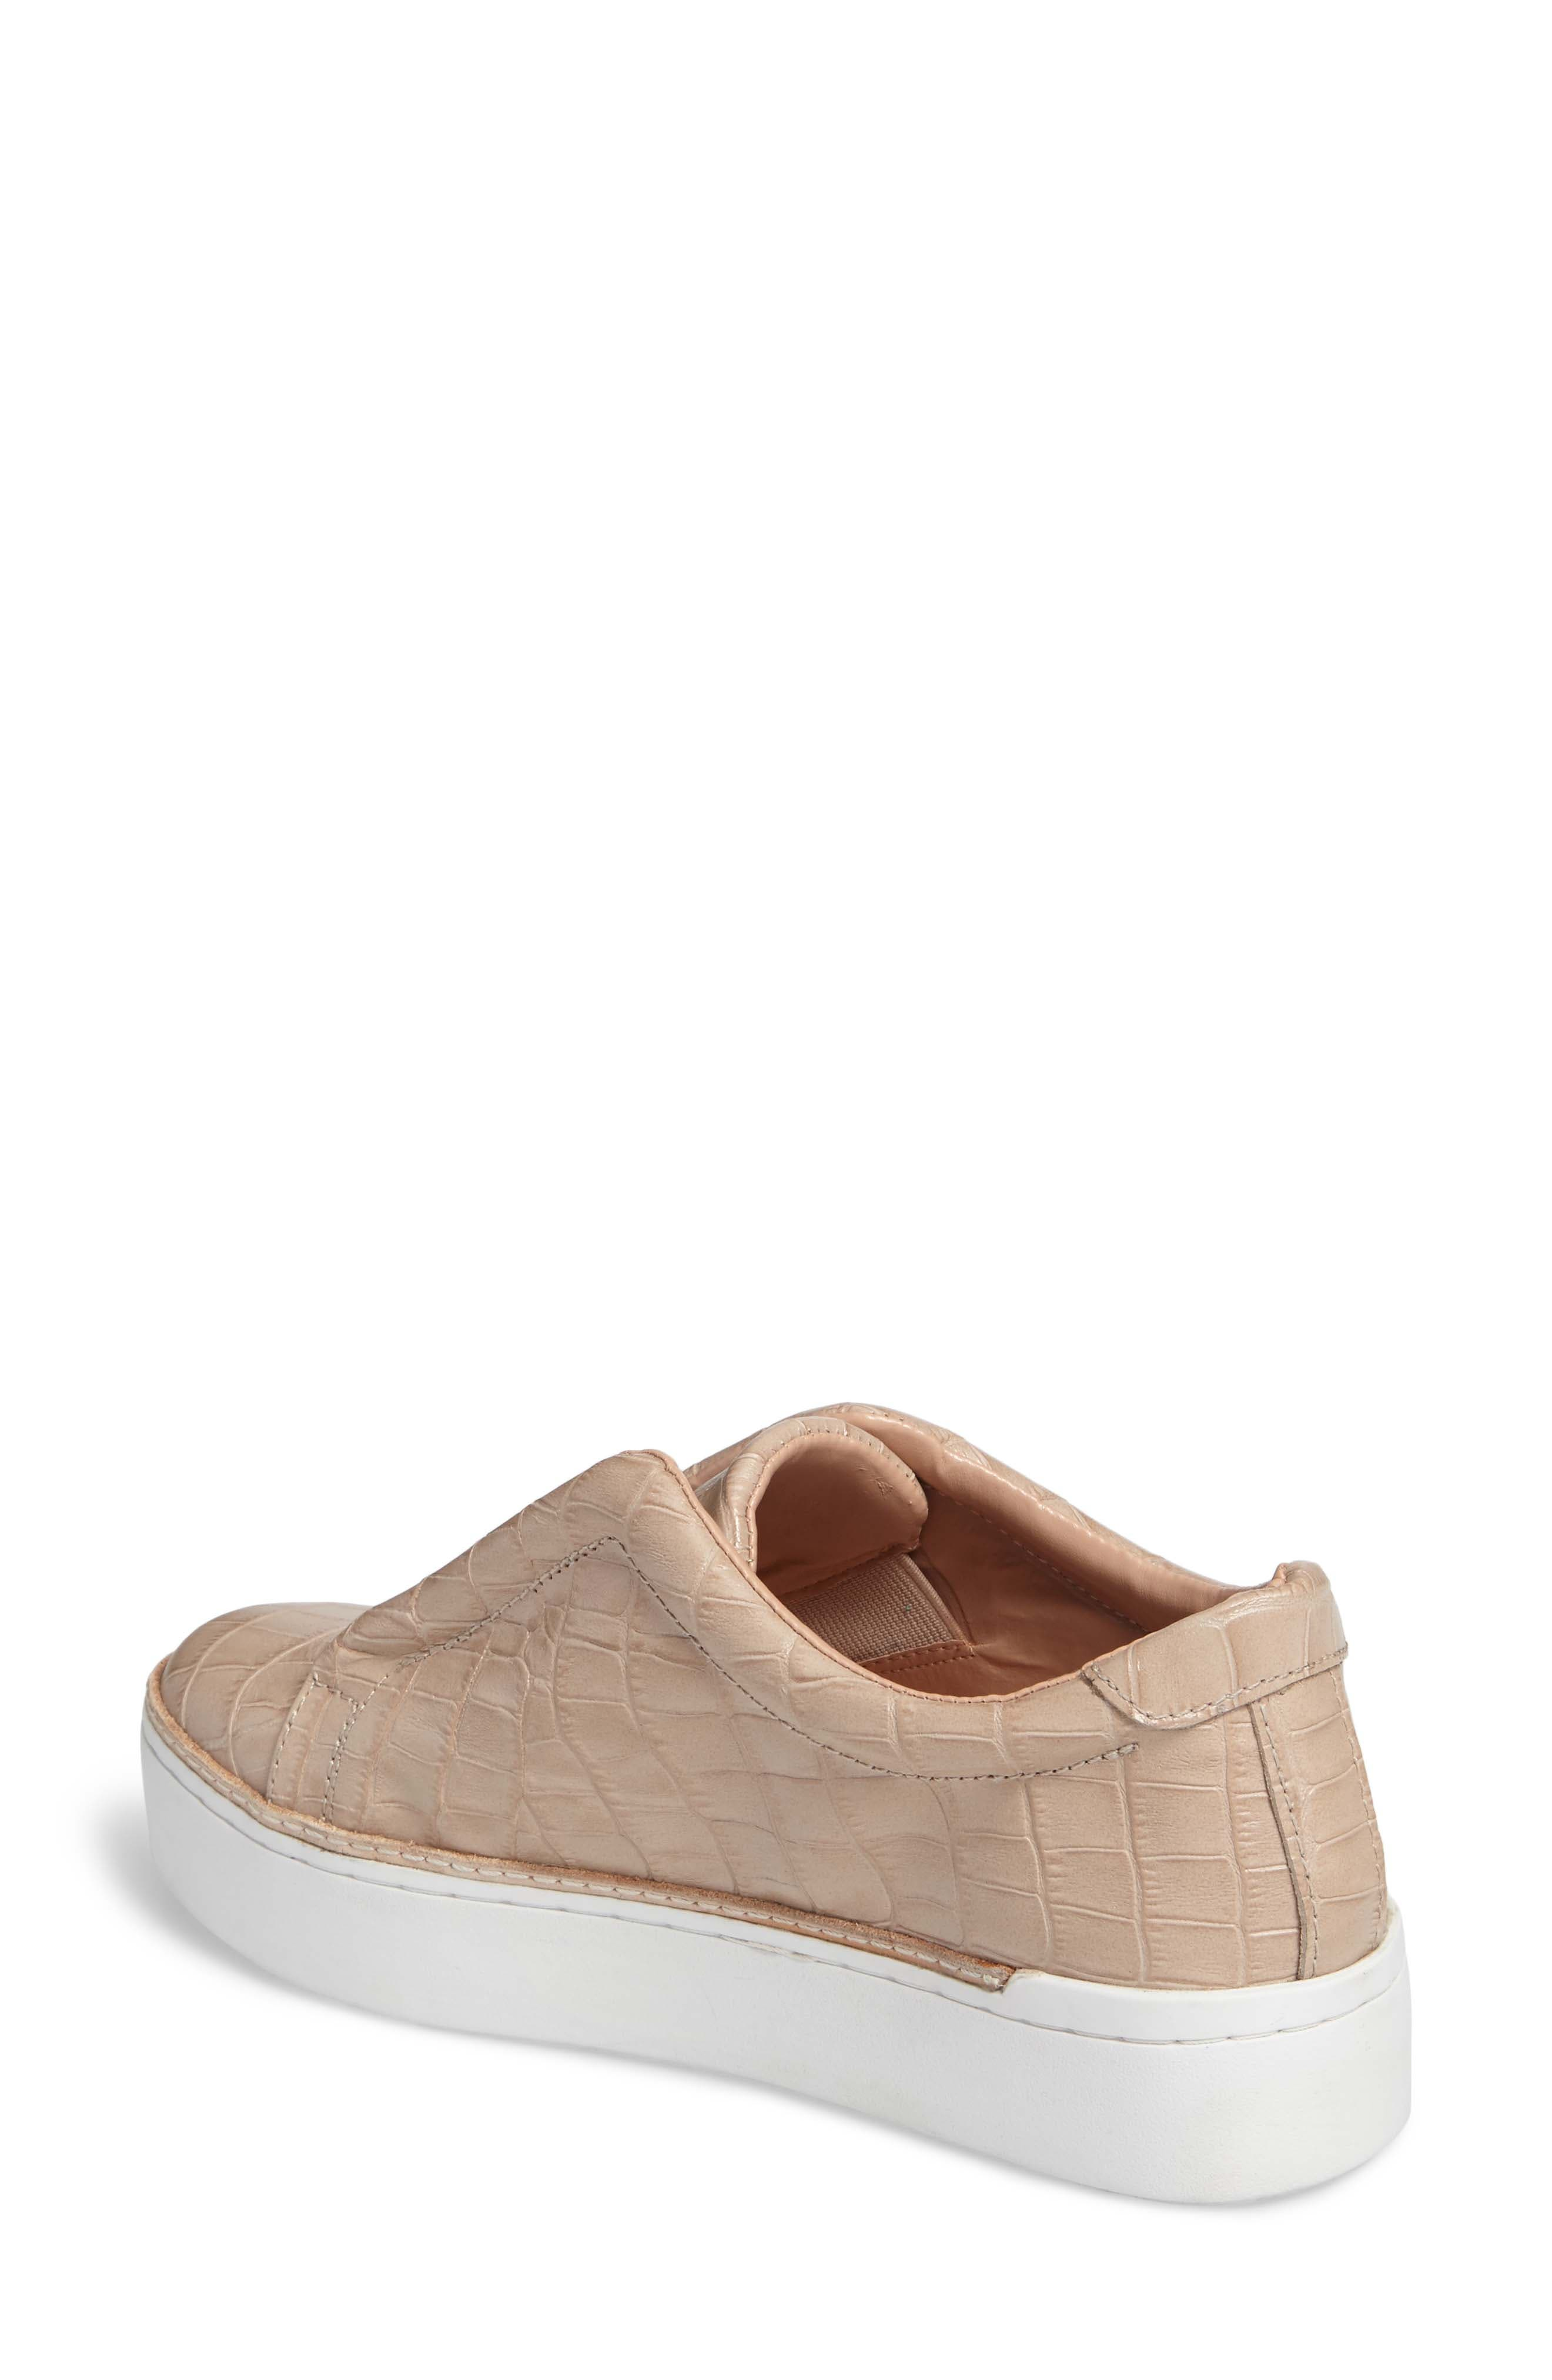 Alternate Image 2  - M4D3 Super Slip-On Sneaker (Women)